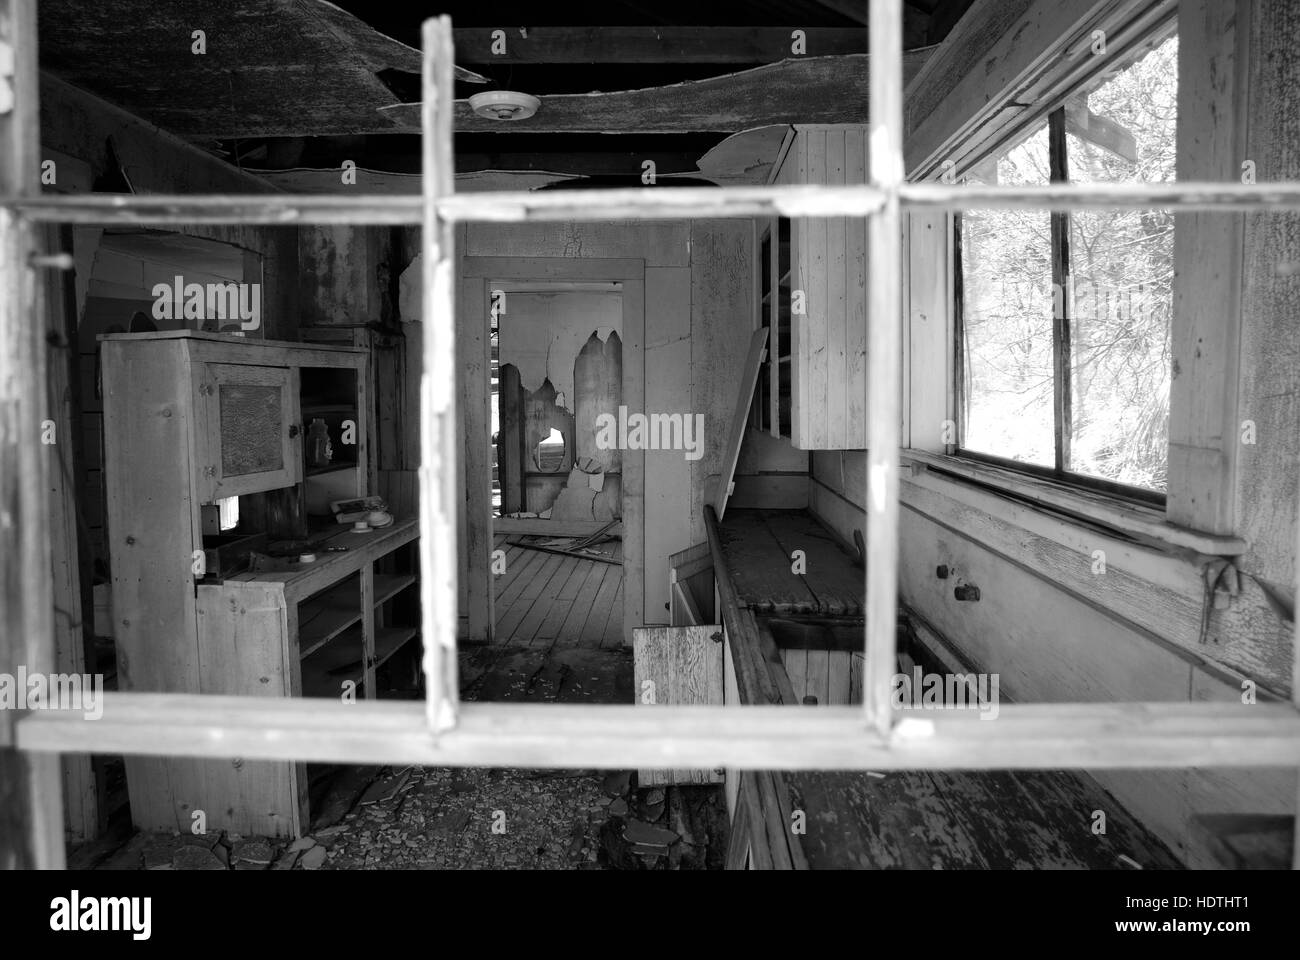 Looking inside an abandoned house in a deserted mining town in Arizona. - Stock Image